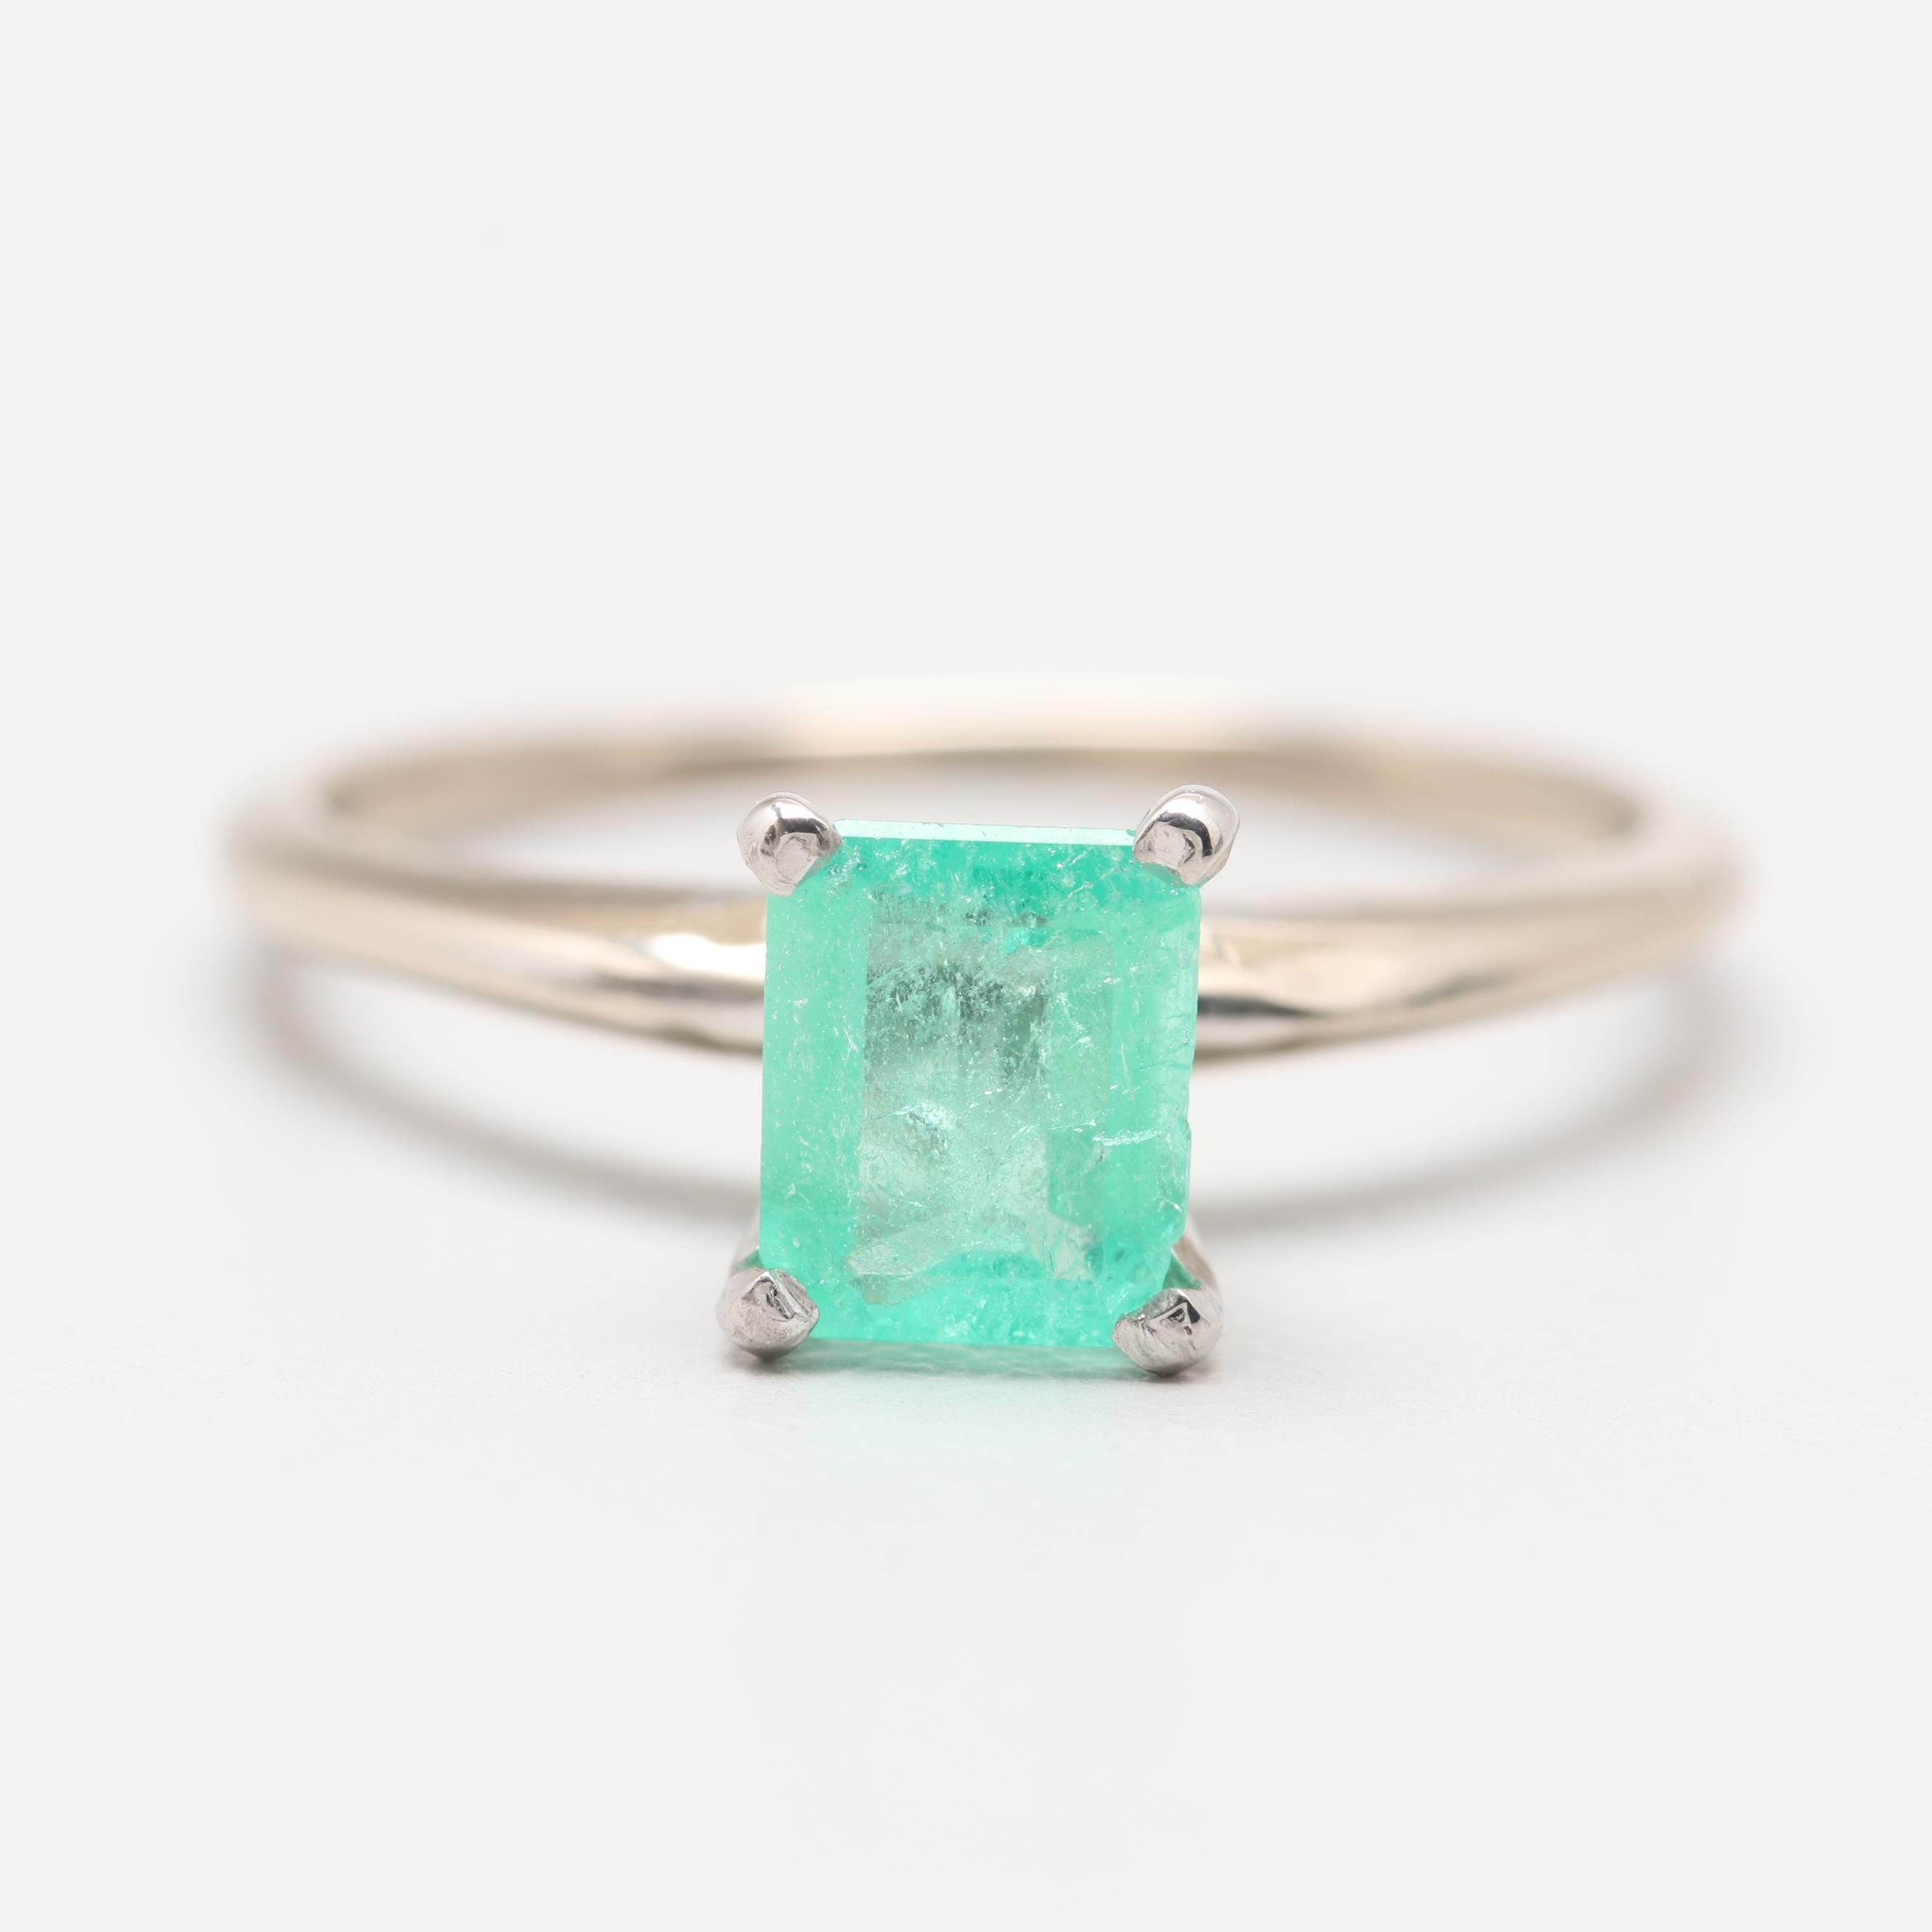 18K White Gold Emerald Ring with Platinum Accent